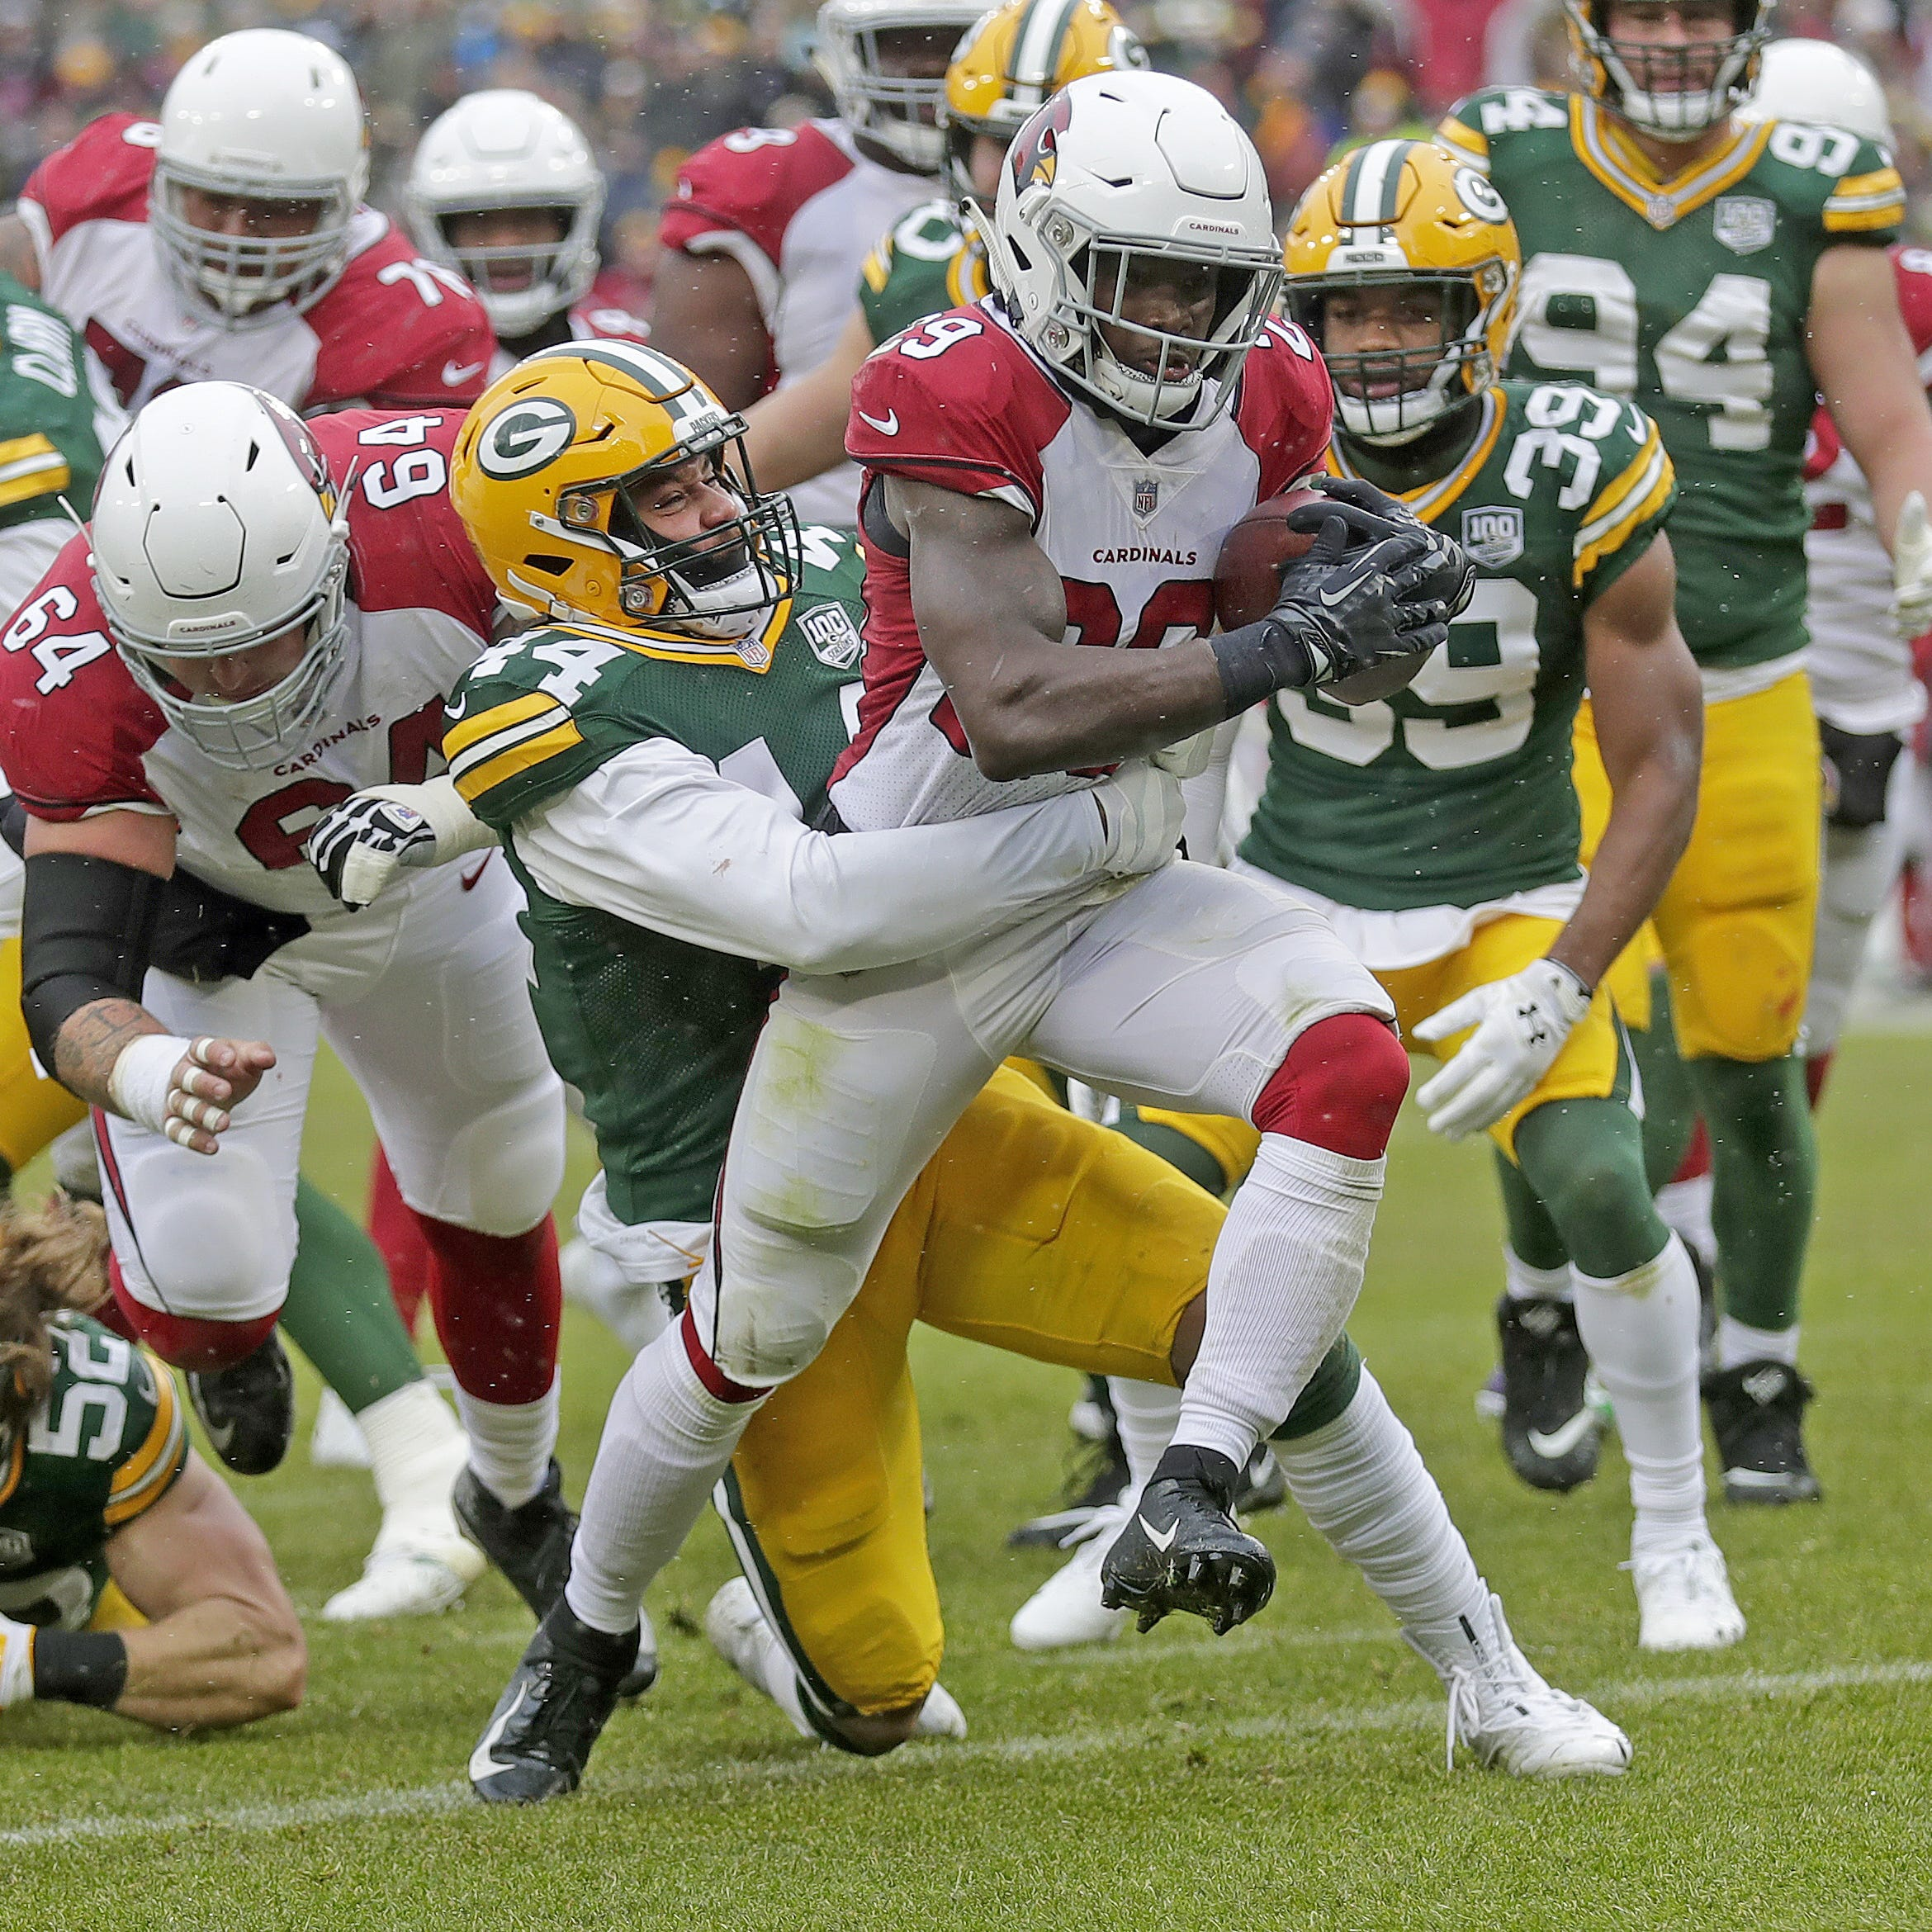 Packers Morning Buzz: Stakes are high for Green Bay players over final weeks